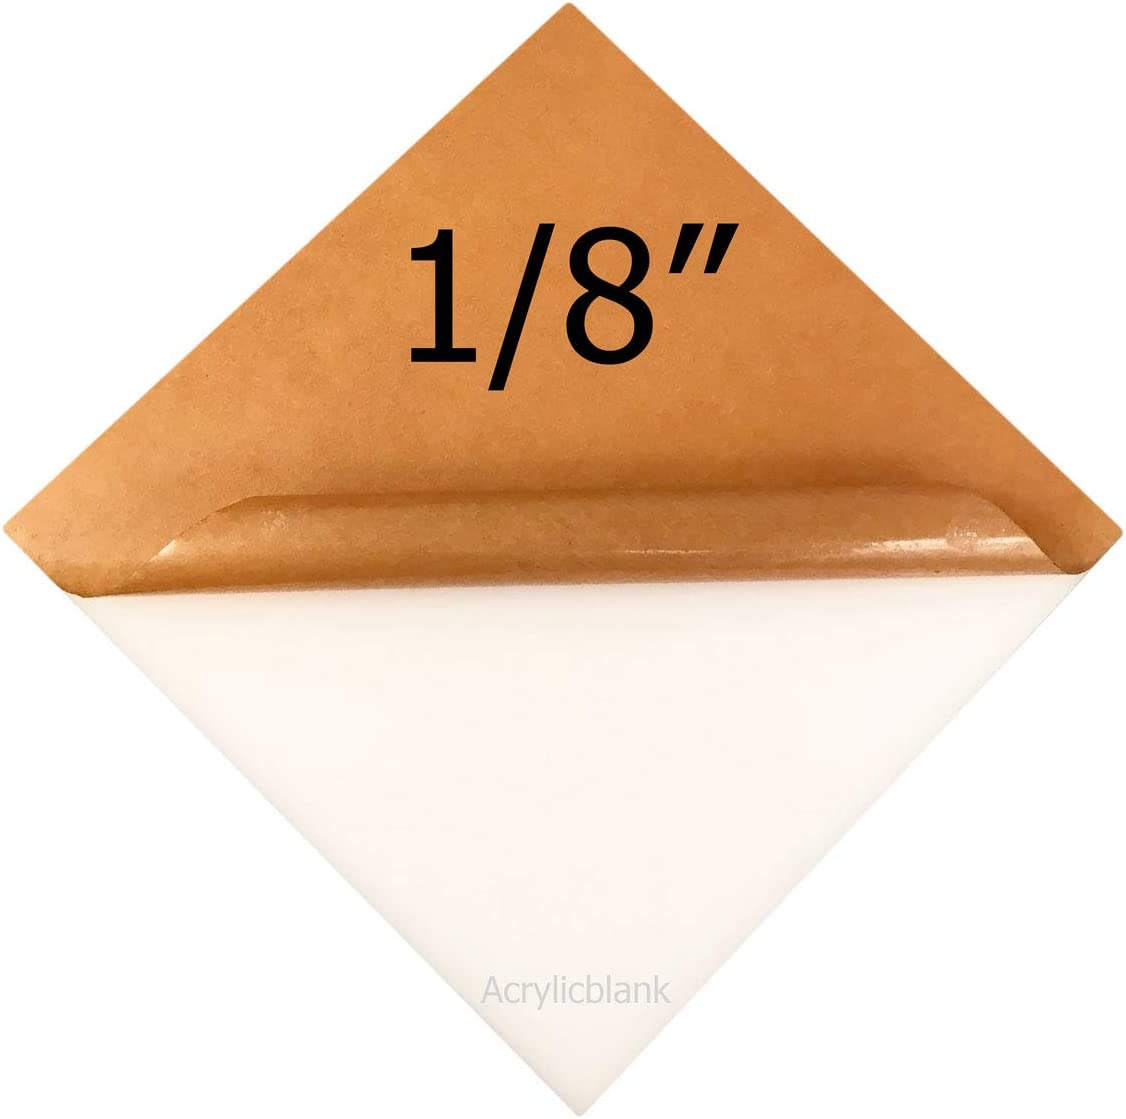 , 3//16 Thick White 11 x 11 5 Pieces Click for More Sizes and Customization Acrylicblank White Acrylic Sheet Laser Cut Sign Blank